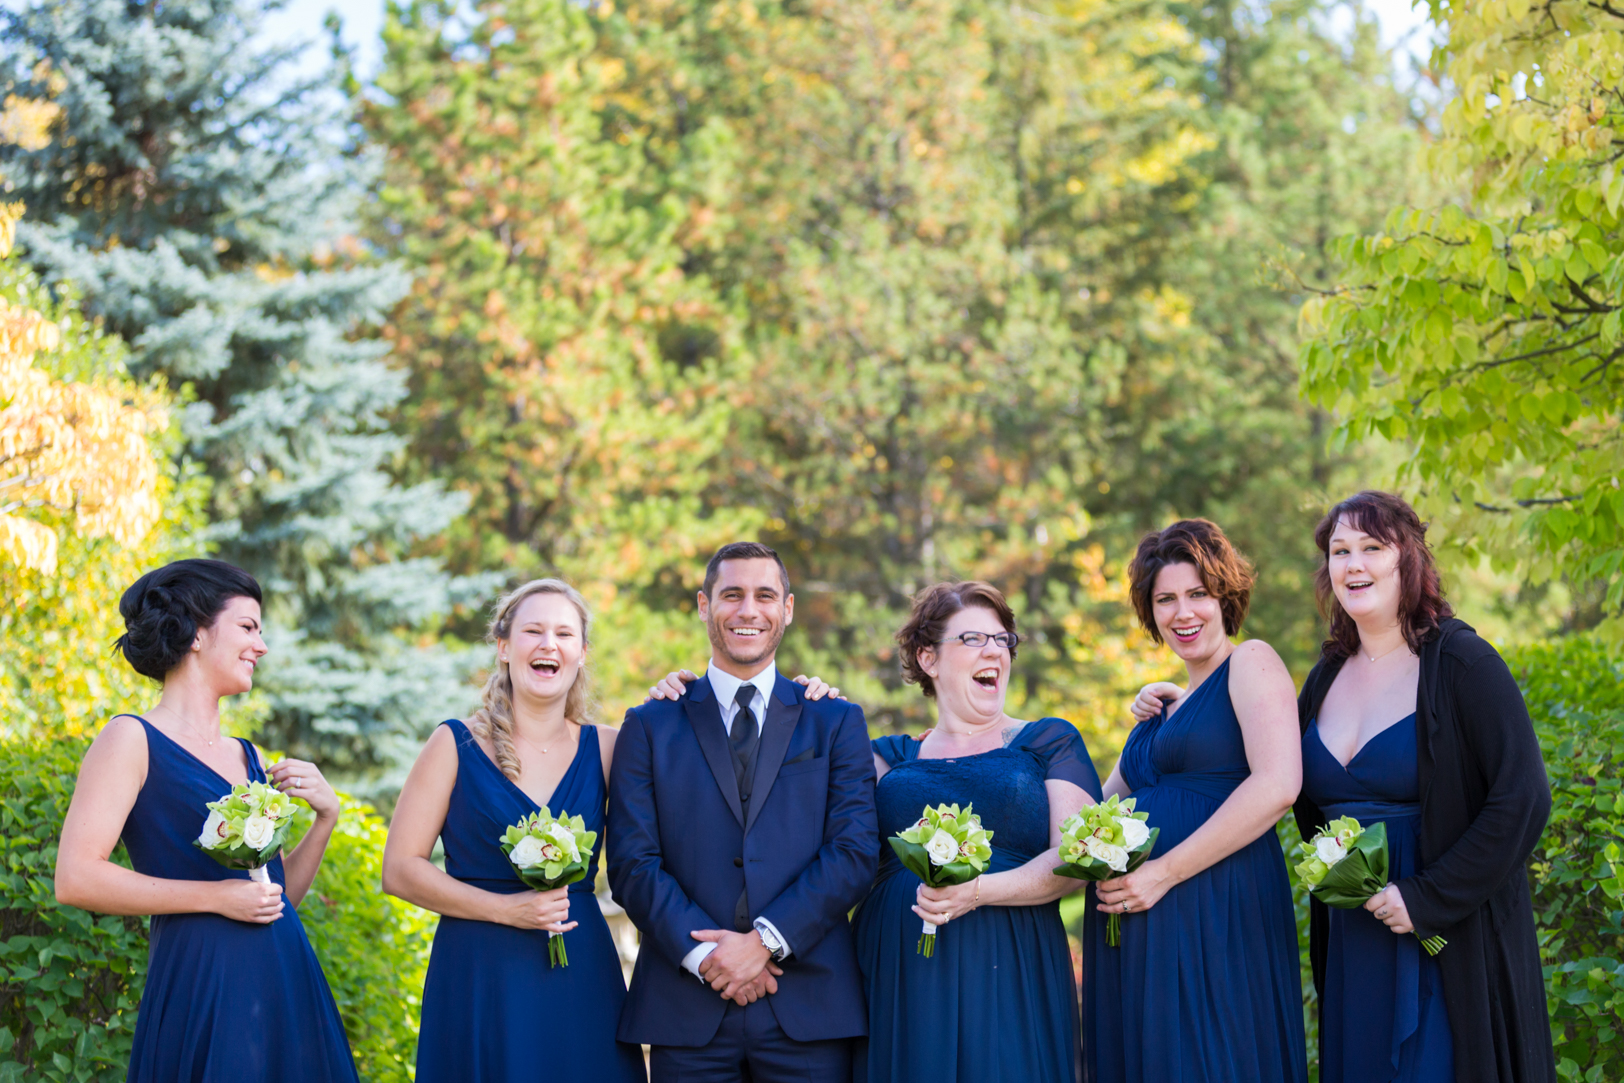 Devonian Botanic Gardens Wedding - Bridal Party Pictures